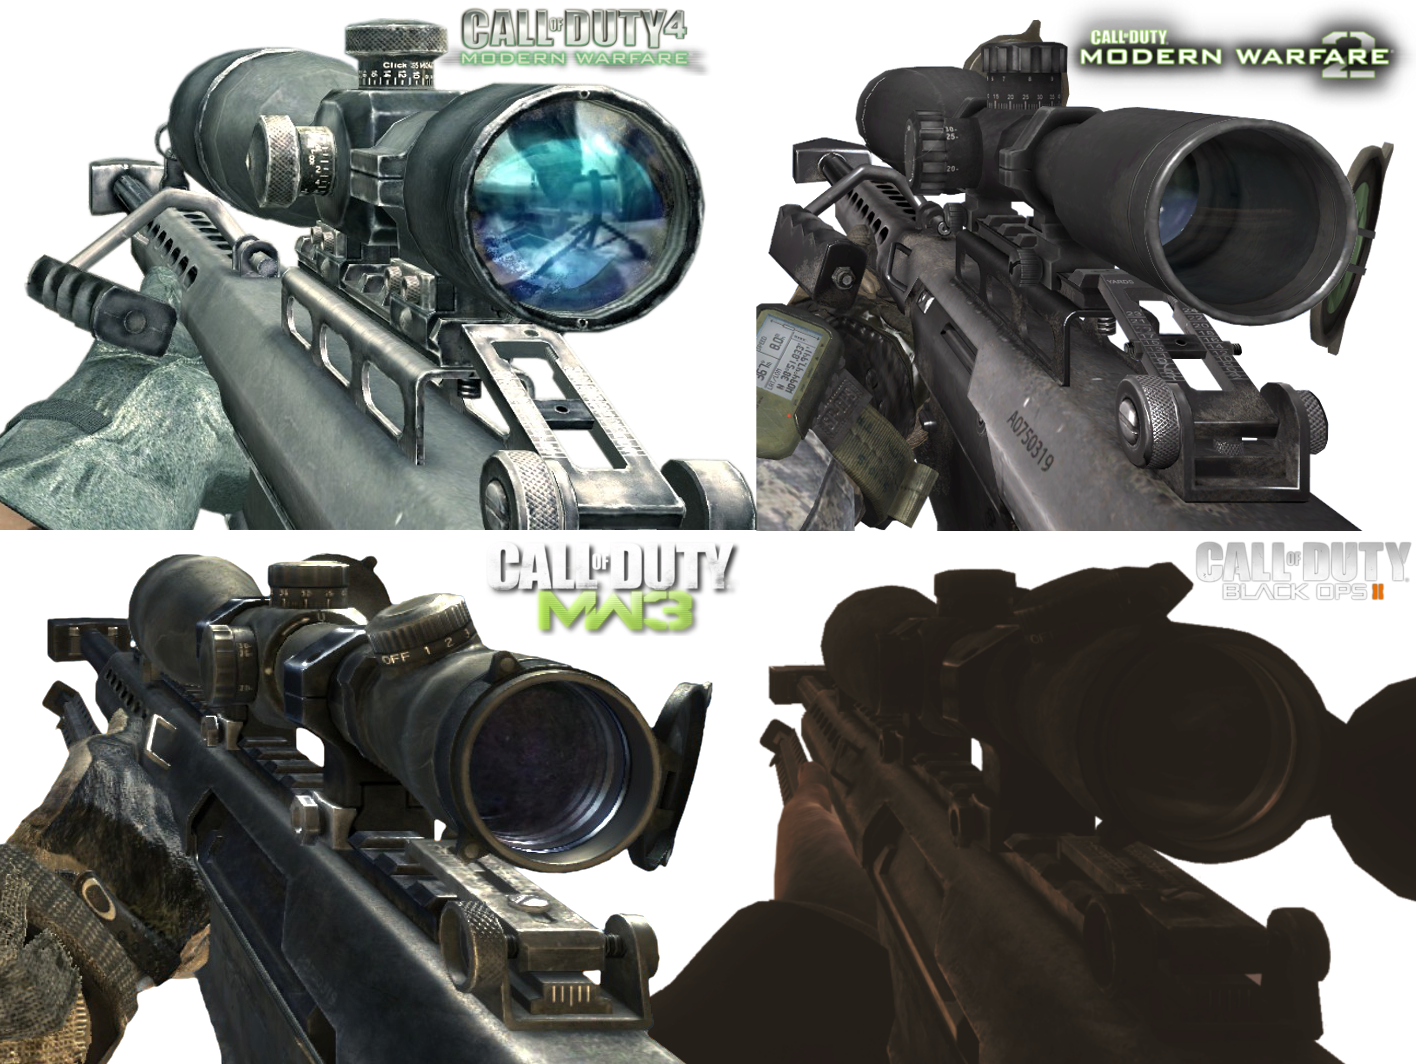 Call of Duty Modern Warfare PNG File Download Free